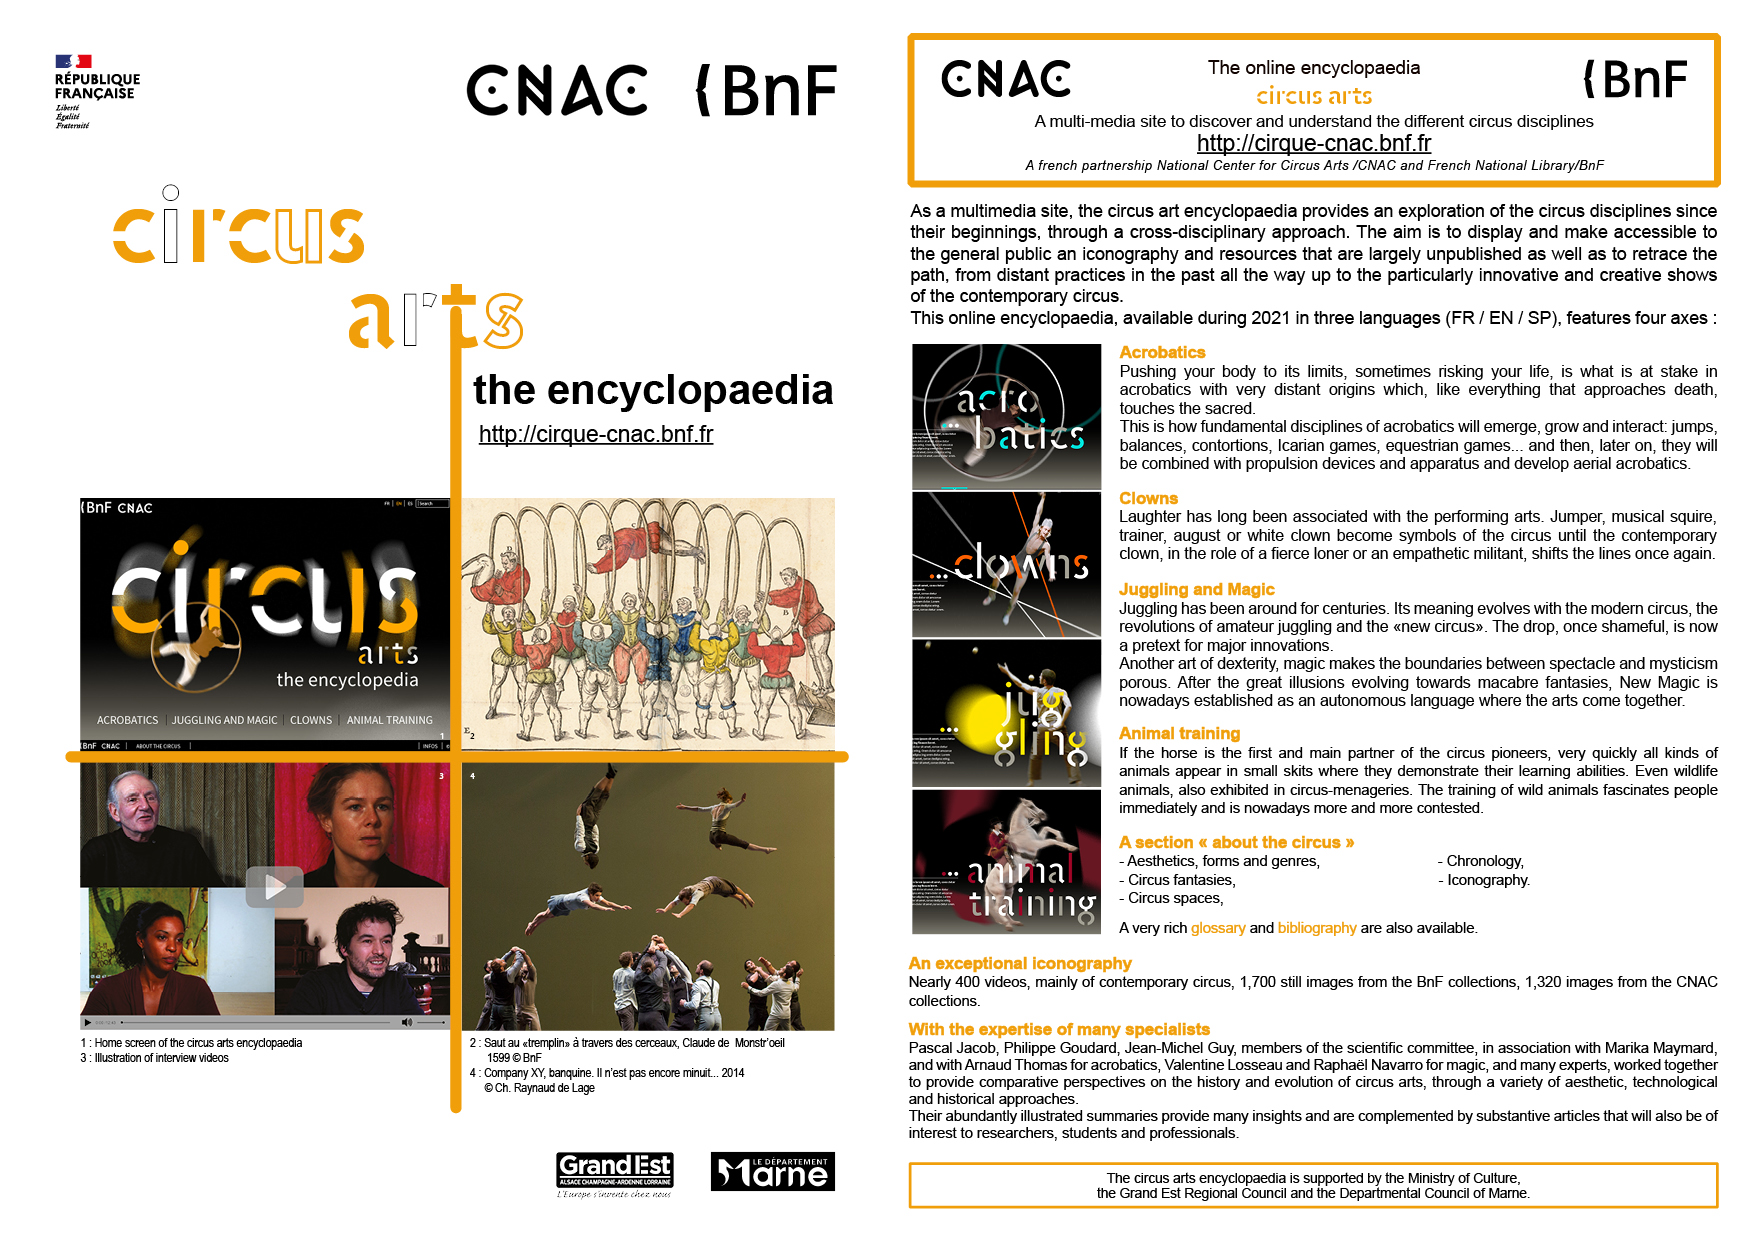 Circus art Encyclopaedia, a multi-media site to discover and understand the different circus disciplines, developed within the framework of a partnership between the Centre national des arts du cirque /CNAC - France and the French National Library (BnF).